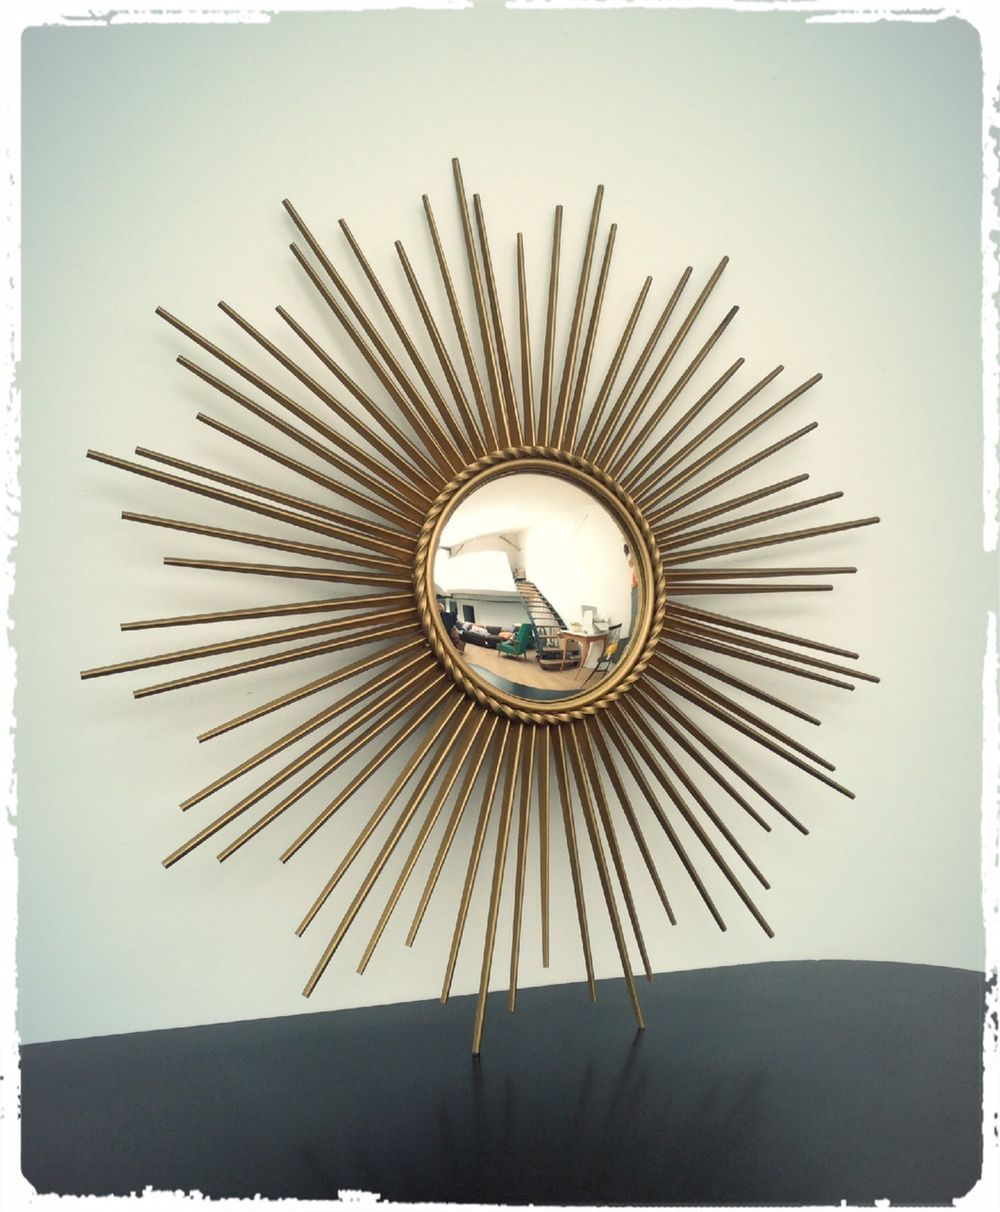 grand miroir soleil vintage oeil de sorciere chaty vallauris via oompa click on the image to